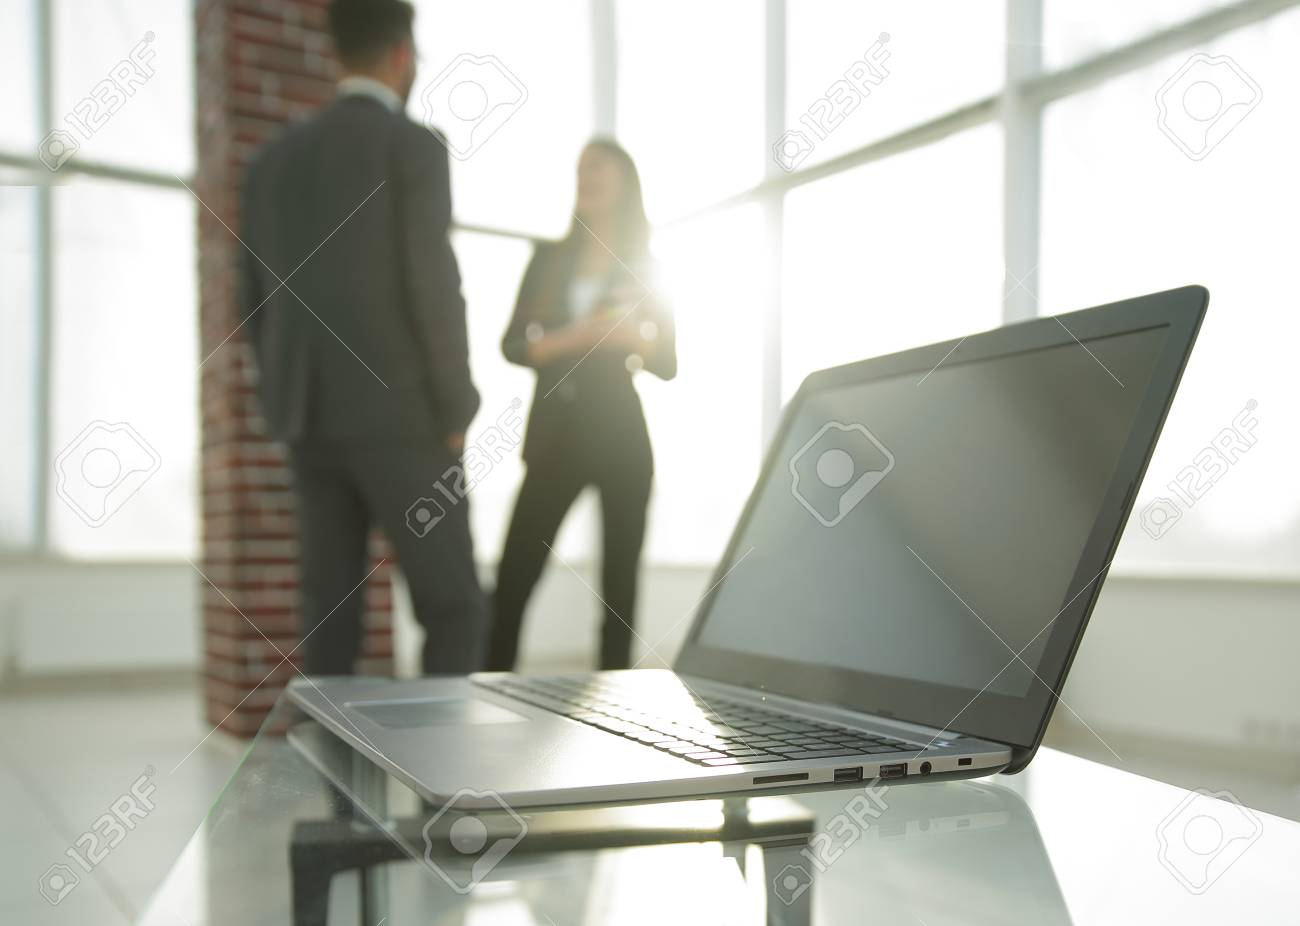 Stock Photo   Workspace Table Works In The Office With A Computer